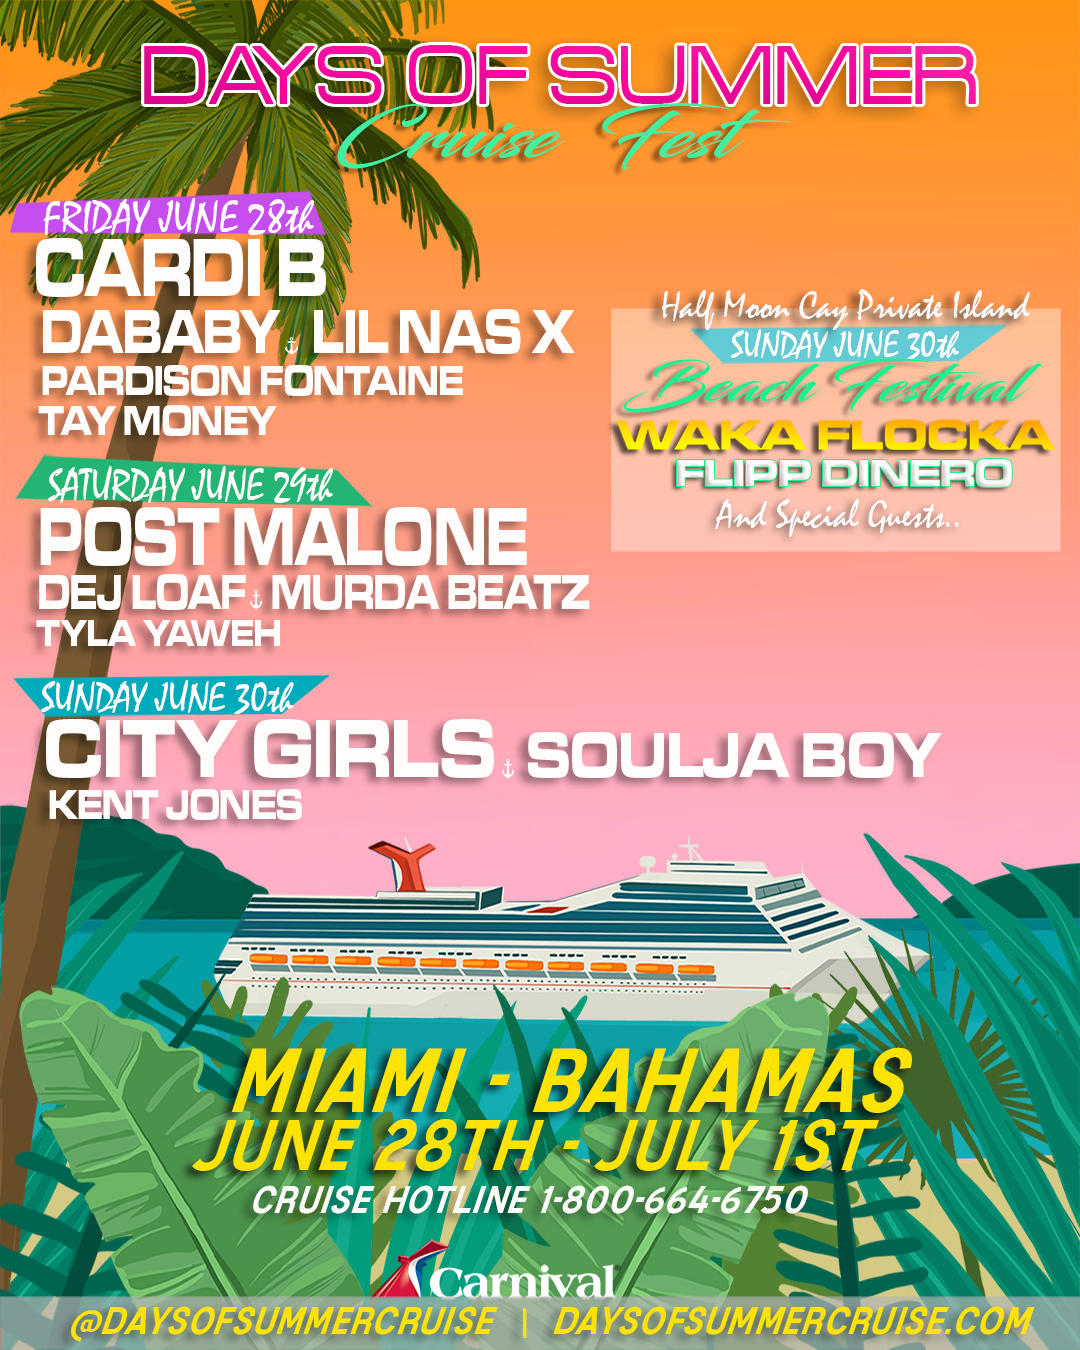 Days Of Summer Announces Full Lineup, Headlined by Post Malone, With Cardi B and Host DJ Khaled